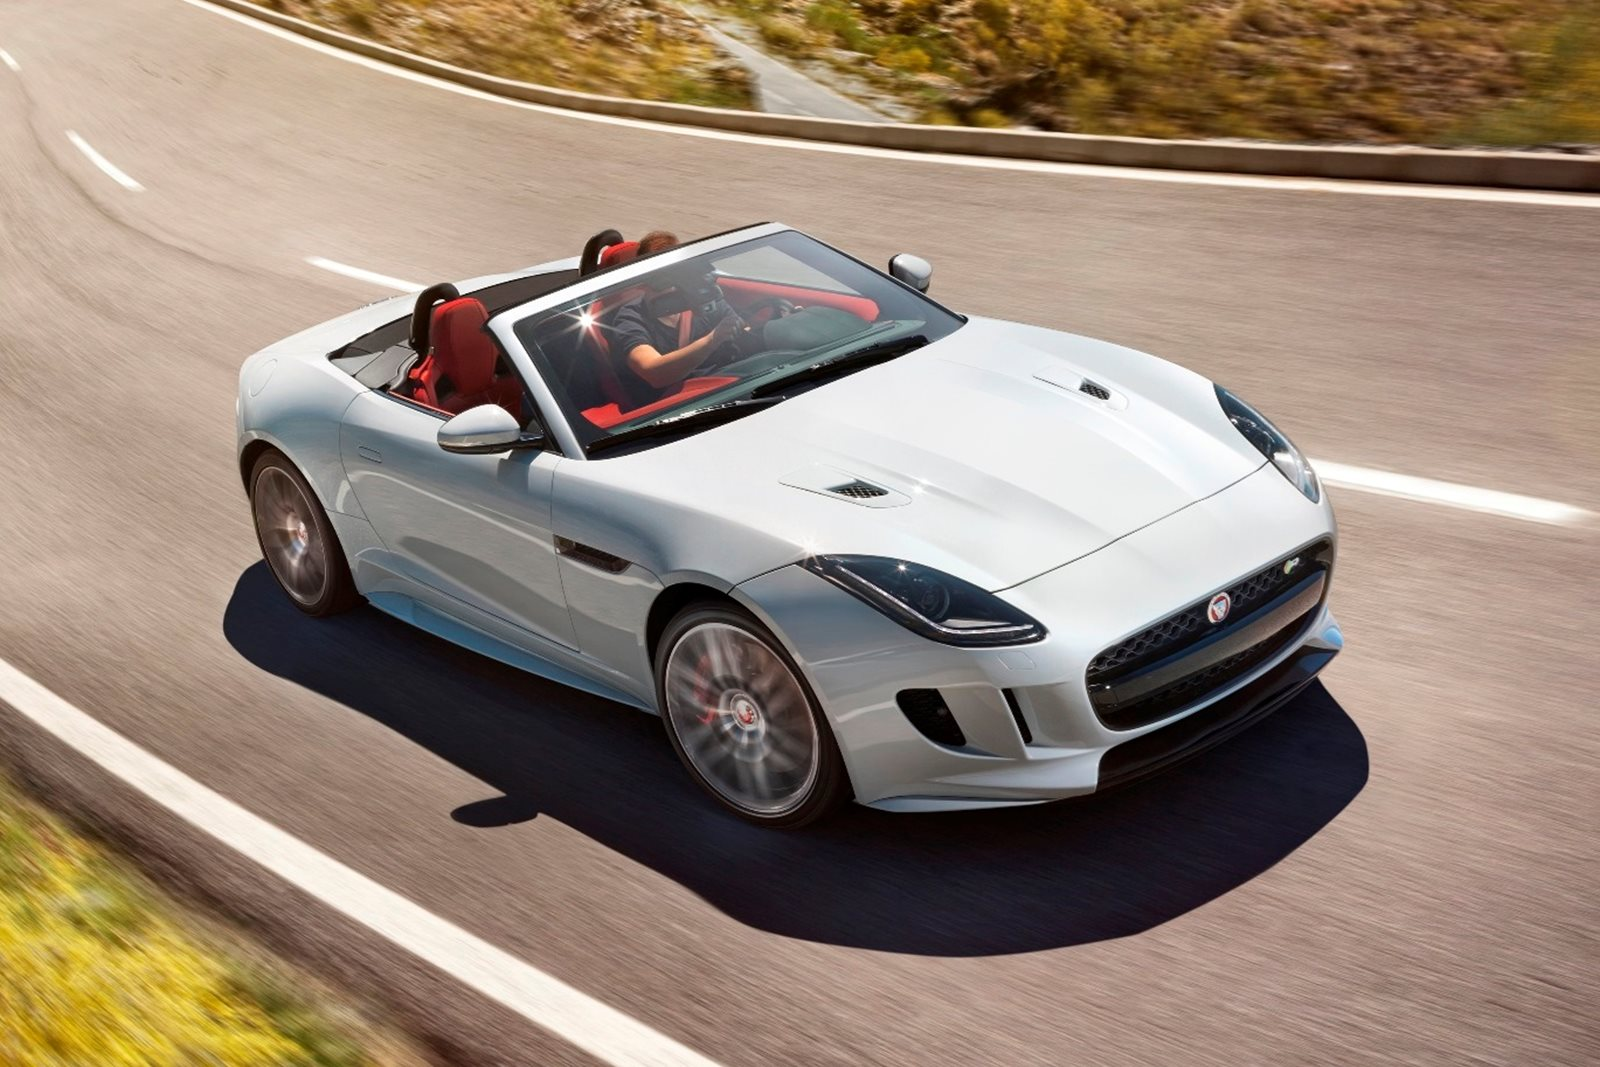 magazine quarter drive three show svr jaguar f review rear price more type first news automobile convertible